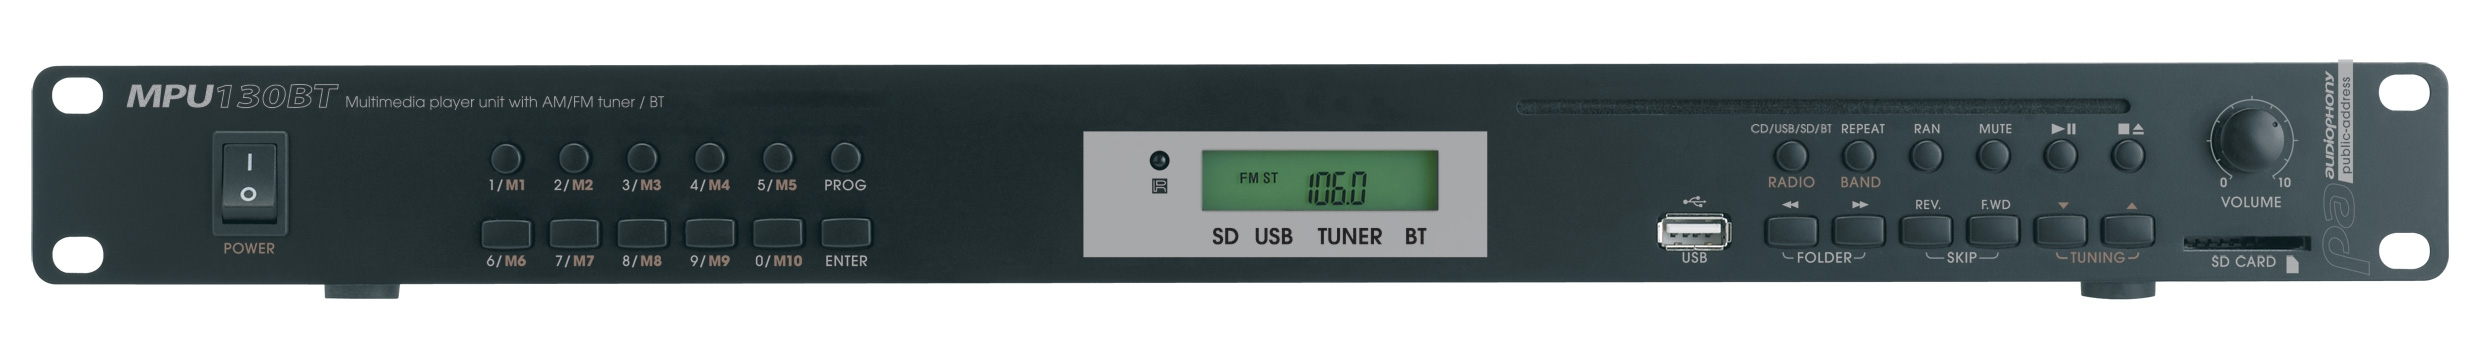 Multimedia and mp3 compatible Tuner / CD / USB / SD / Bluetooth player